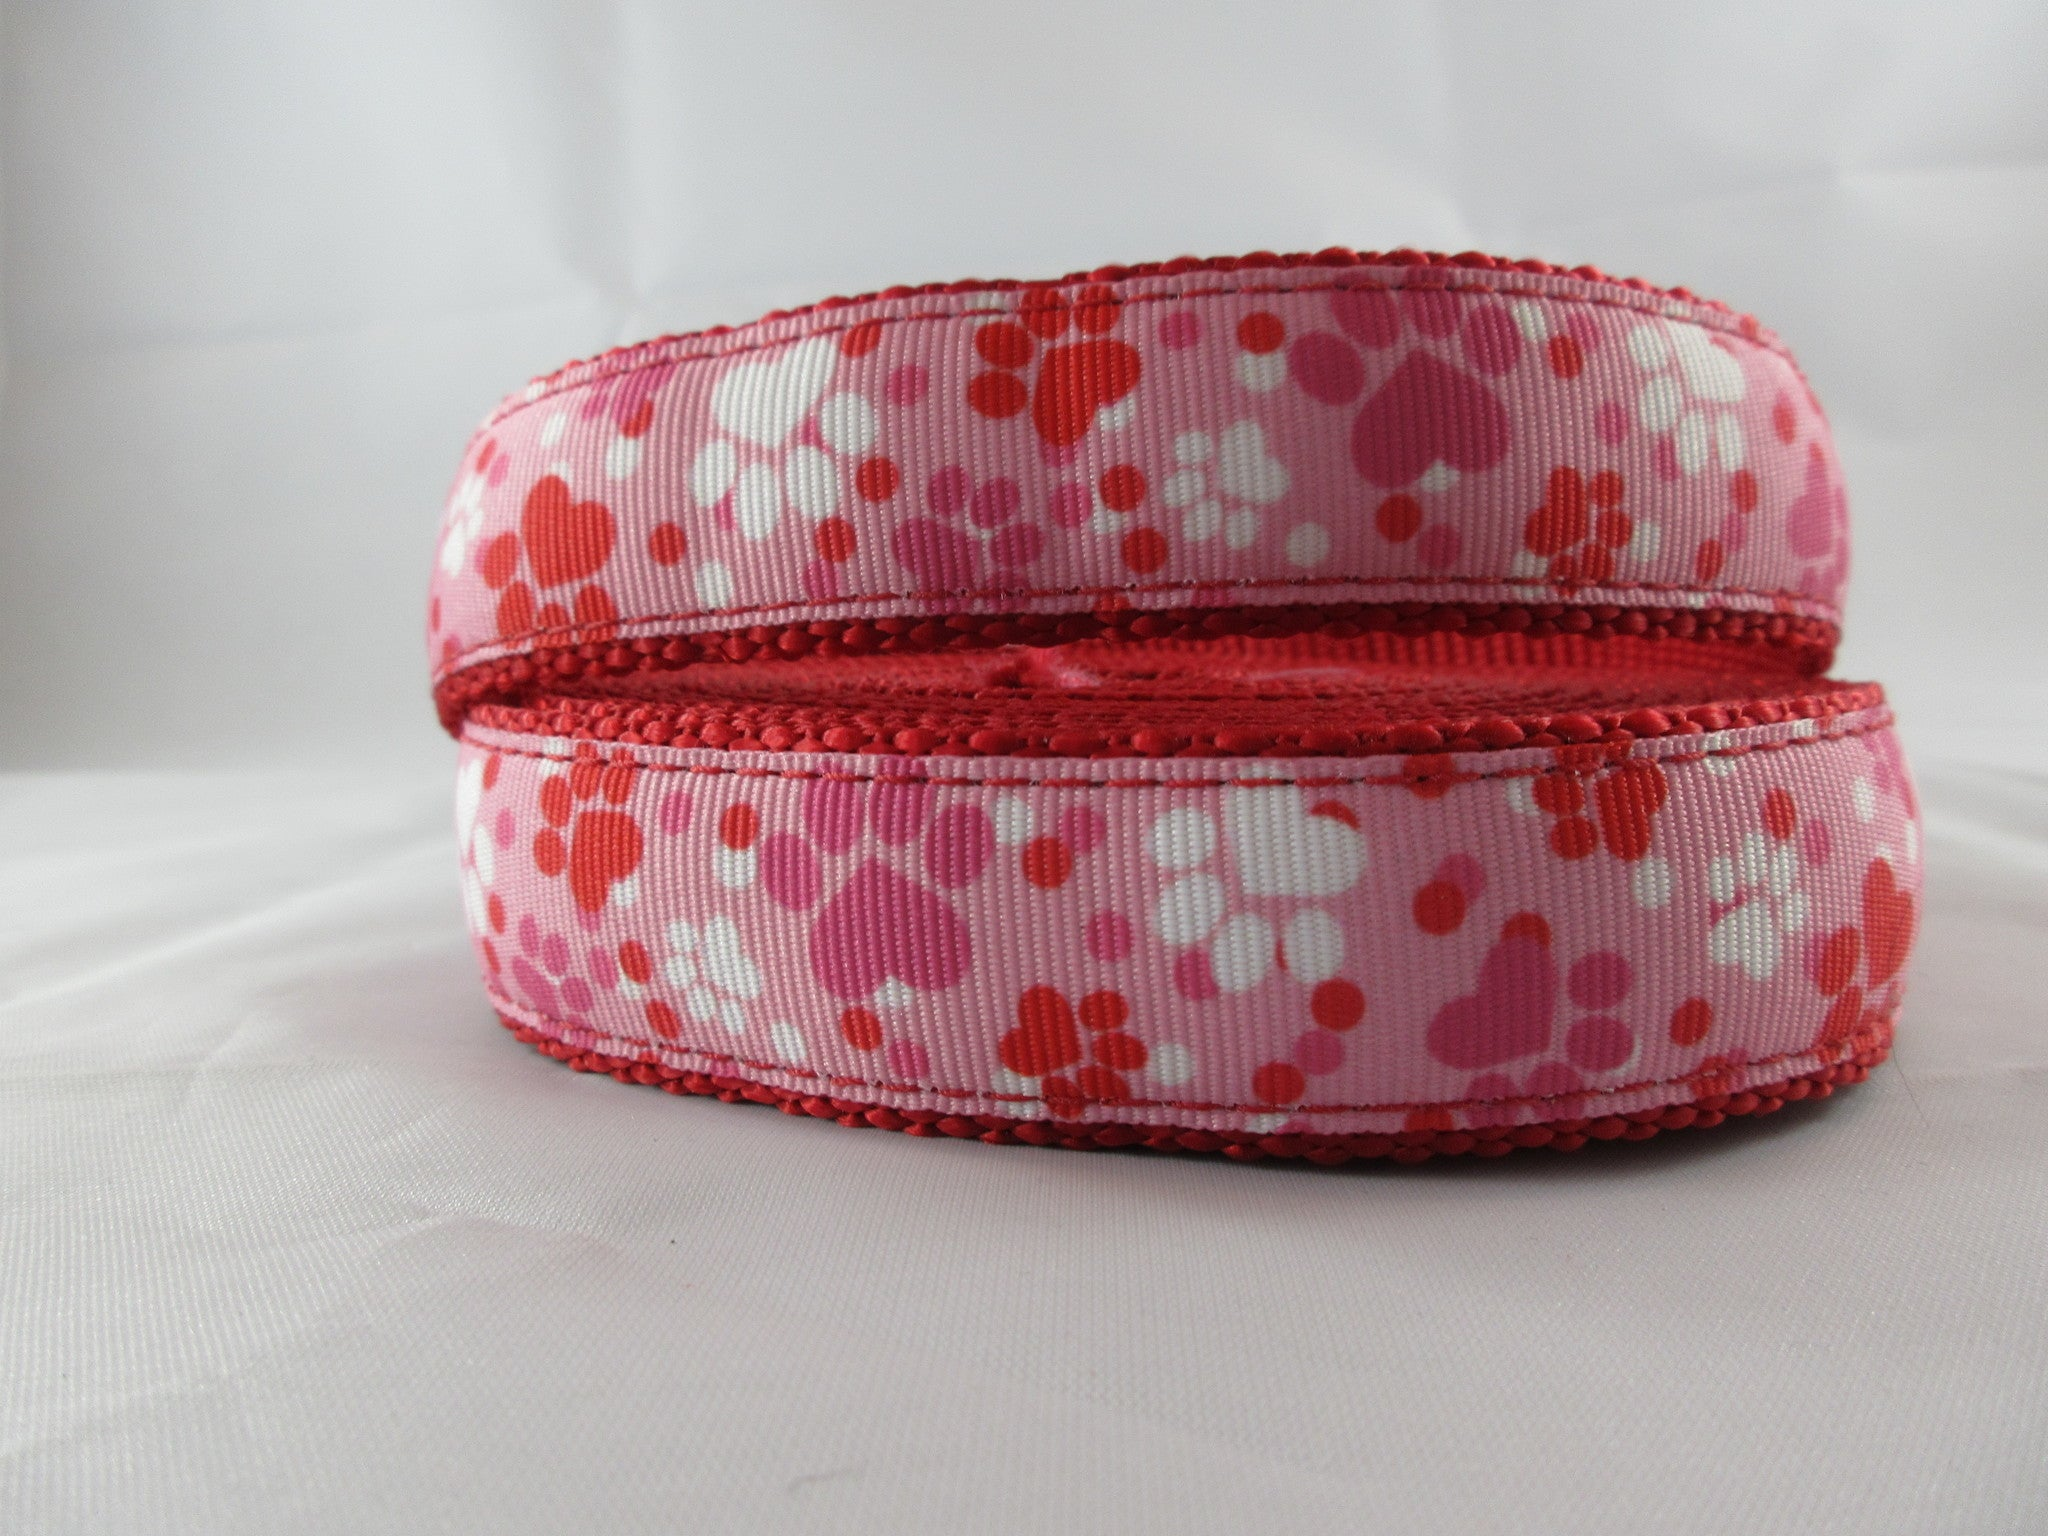 "1"" Puppy Love Leash - Penny and Hoover's Pig Pen"